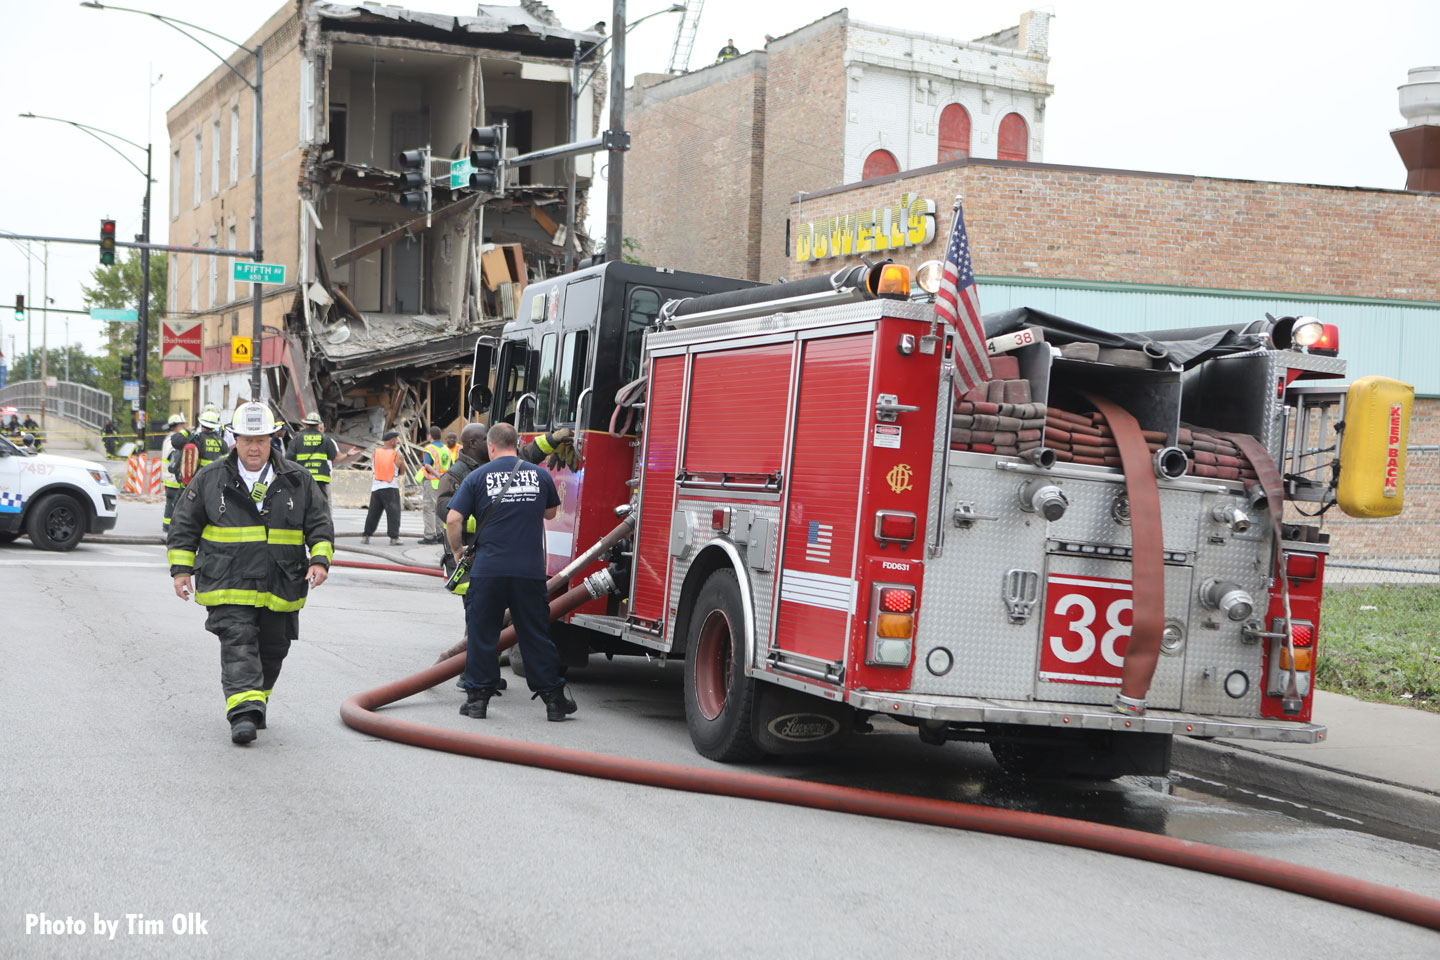 Chicago firefighters and a rig at the scene.